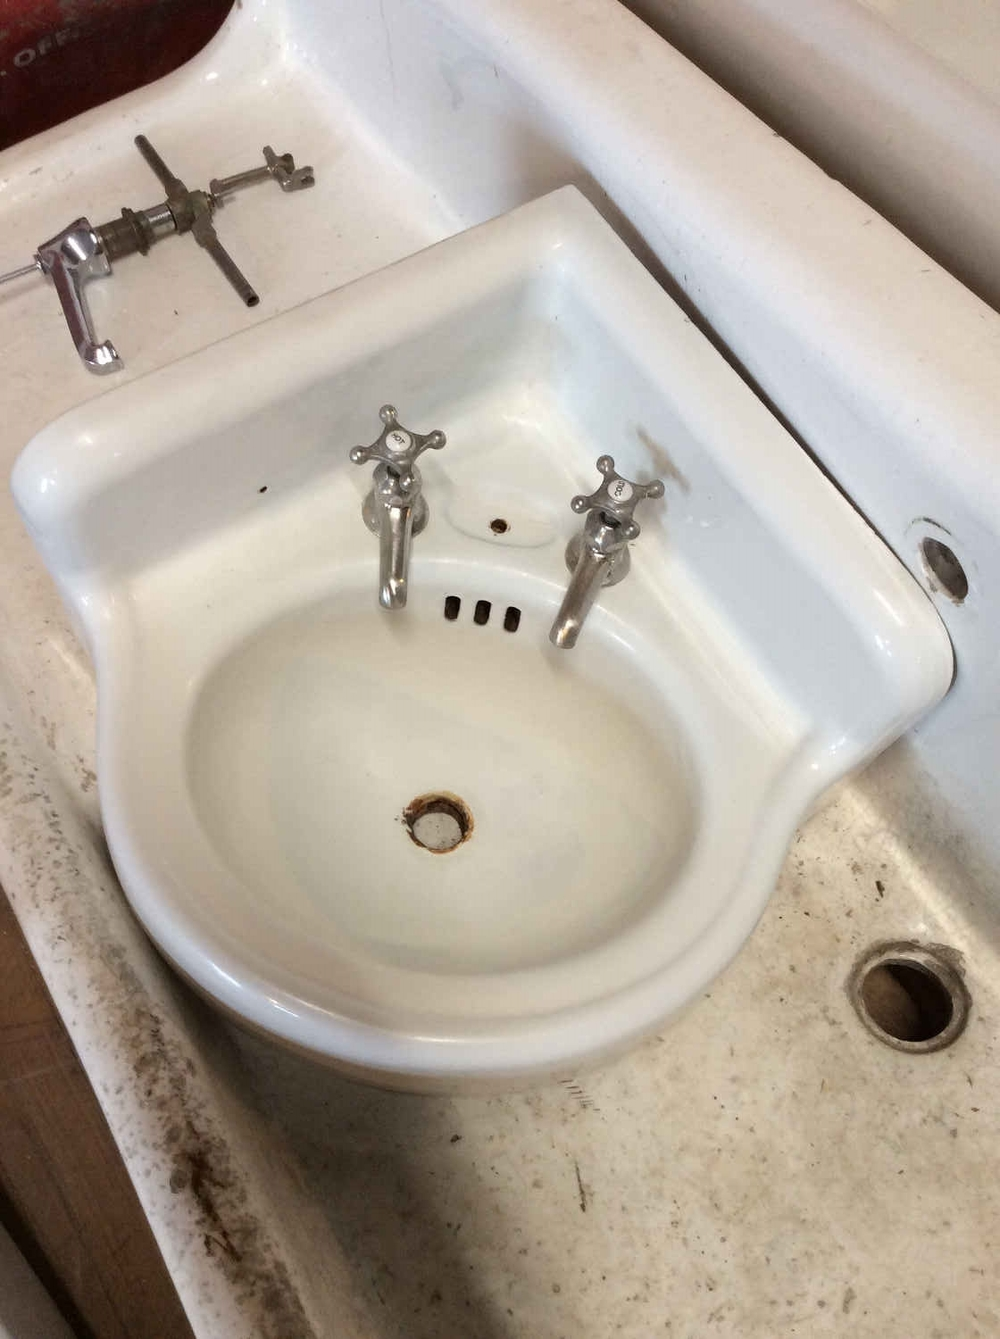 SOLD!! Porcelain Enamel Over Cast Iron Corner Sink